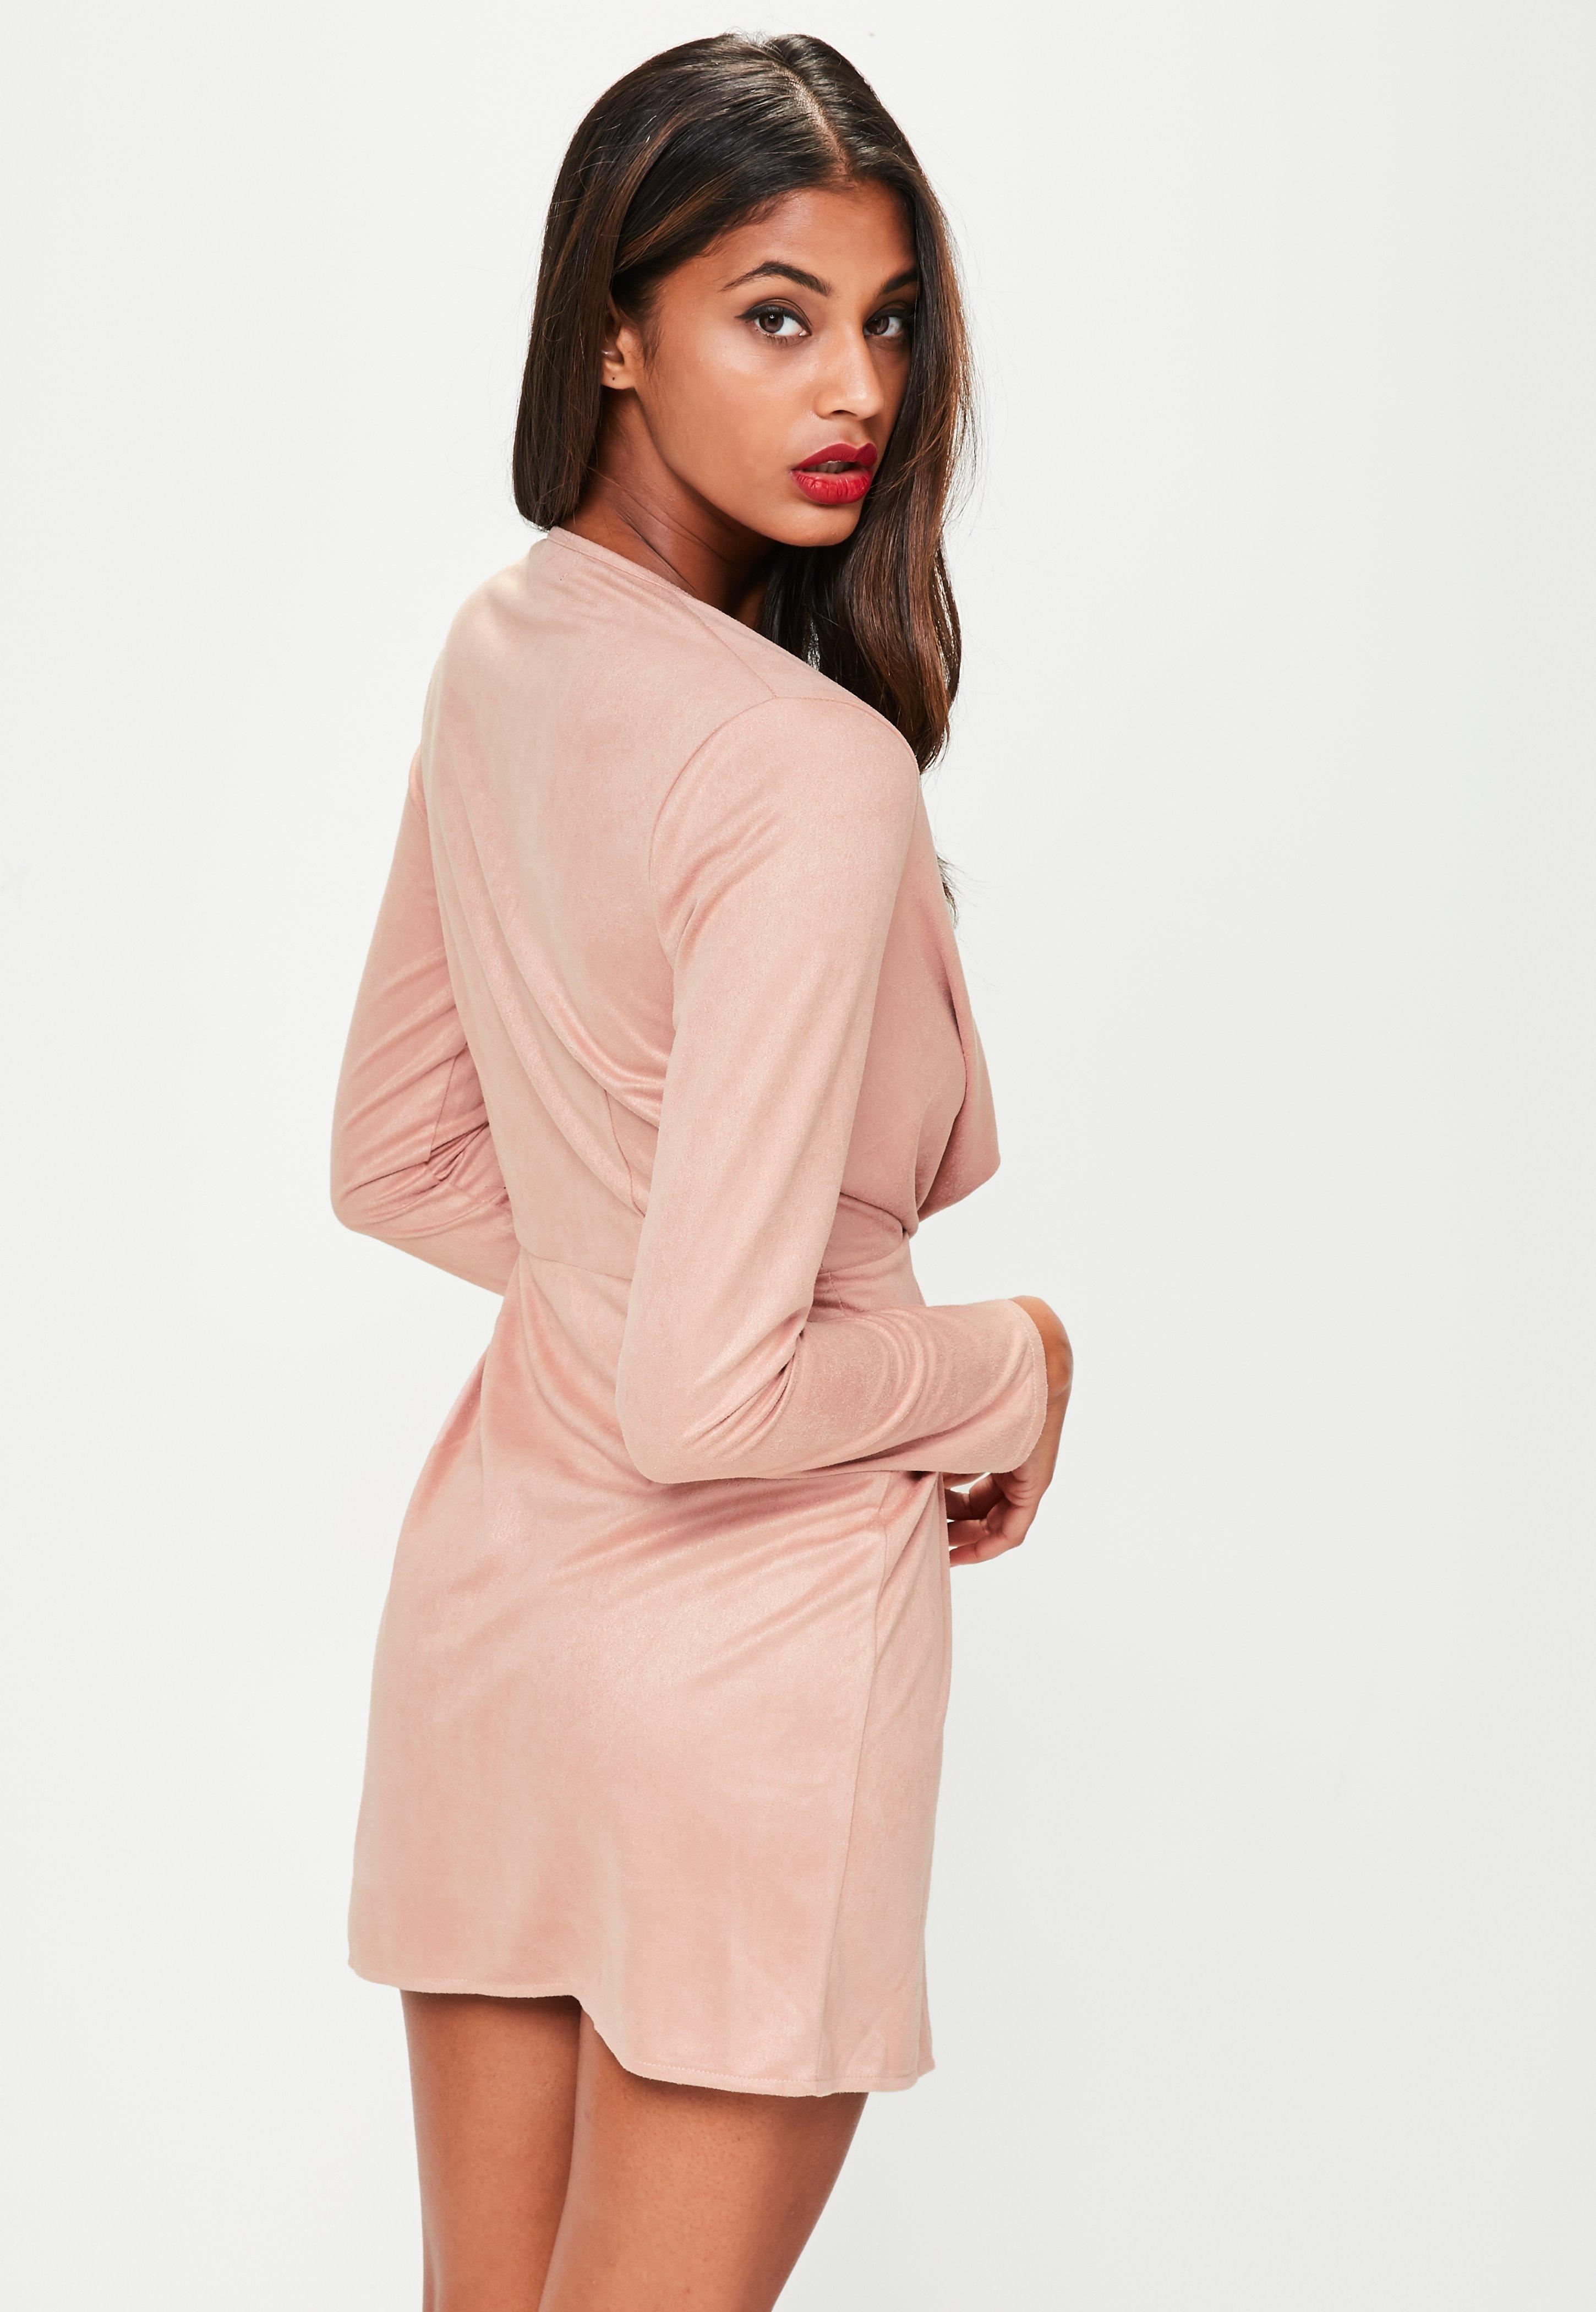 Evening Dresses | Long Evening Gowns - Missguided